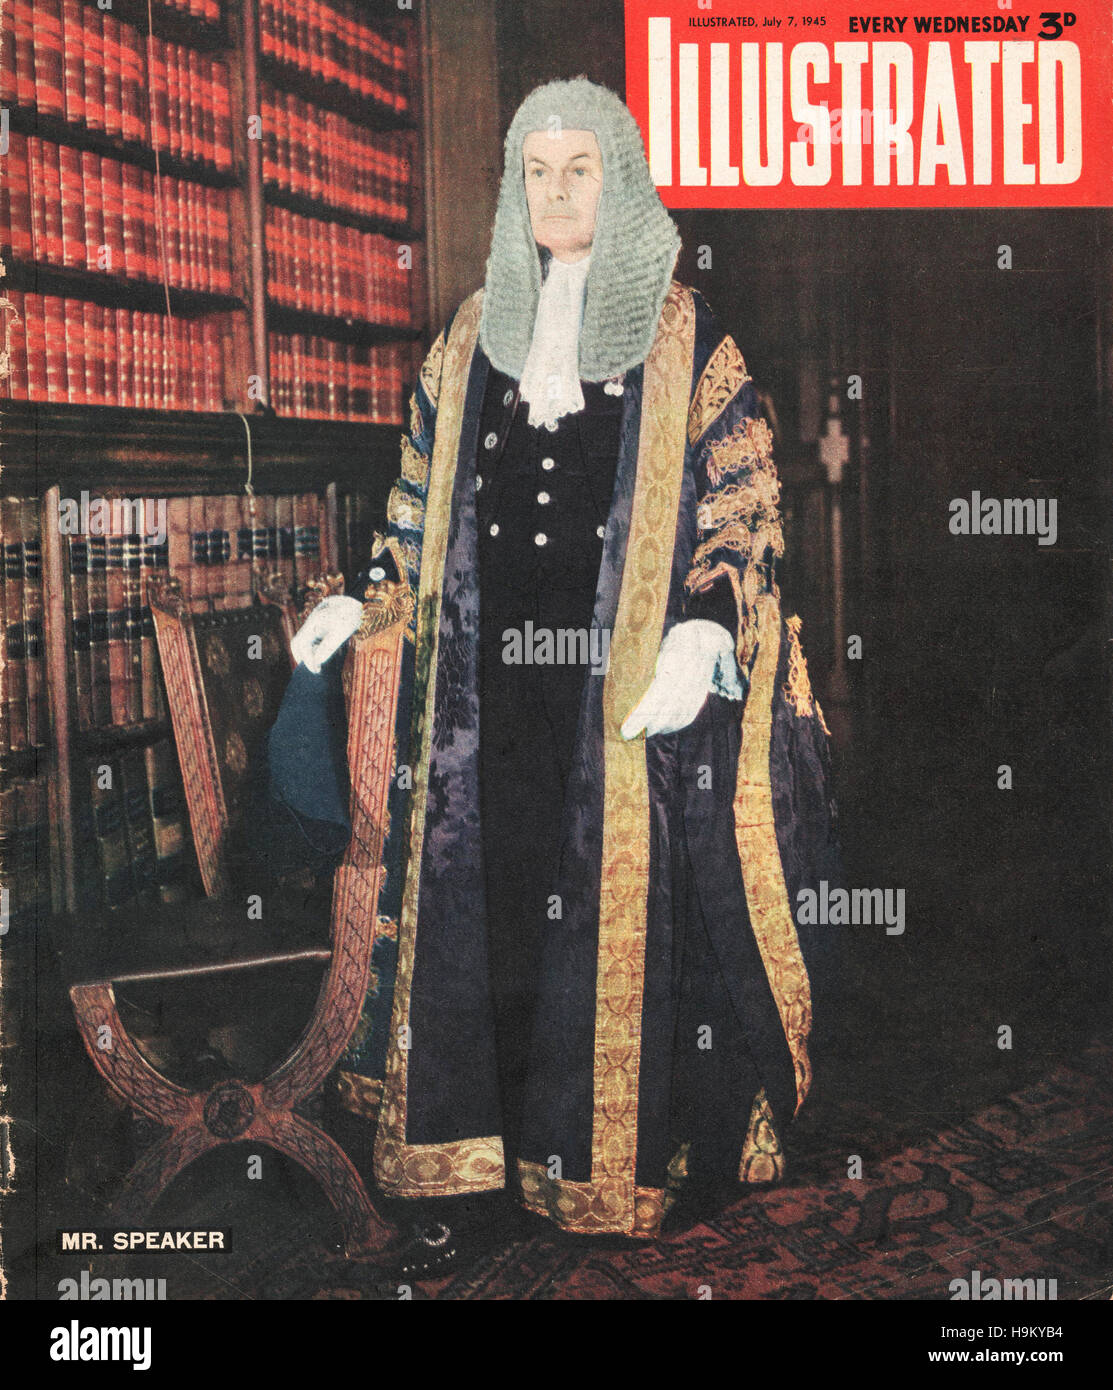 1945 Illustrated Colonel Douglas Clifton Brown, Speaker of the House of Commons